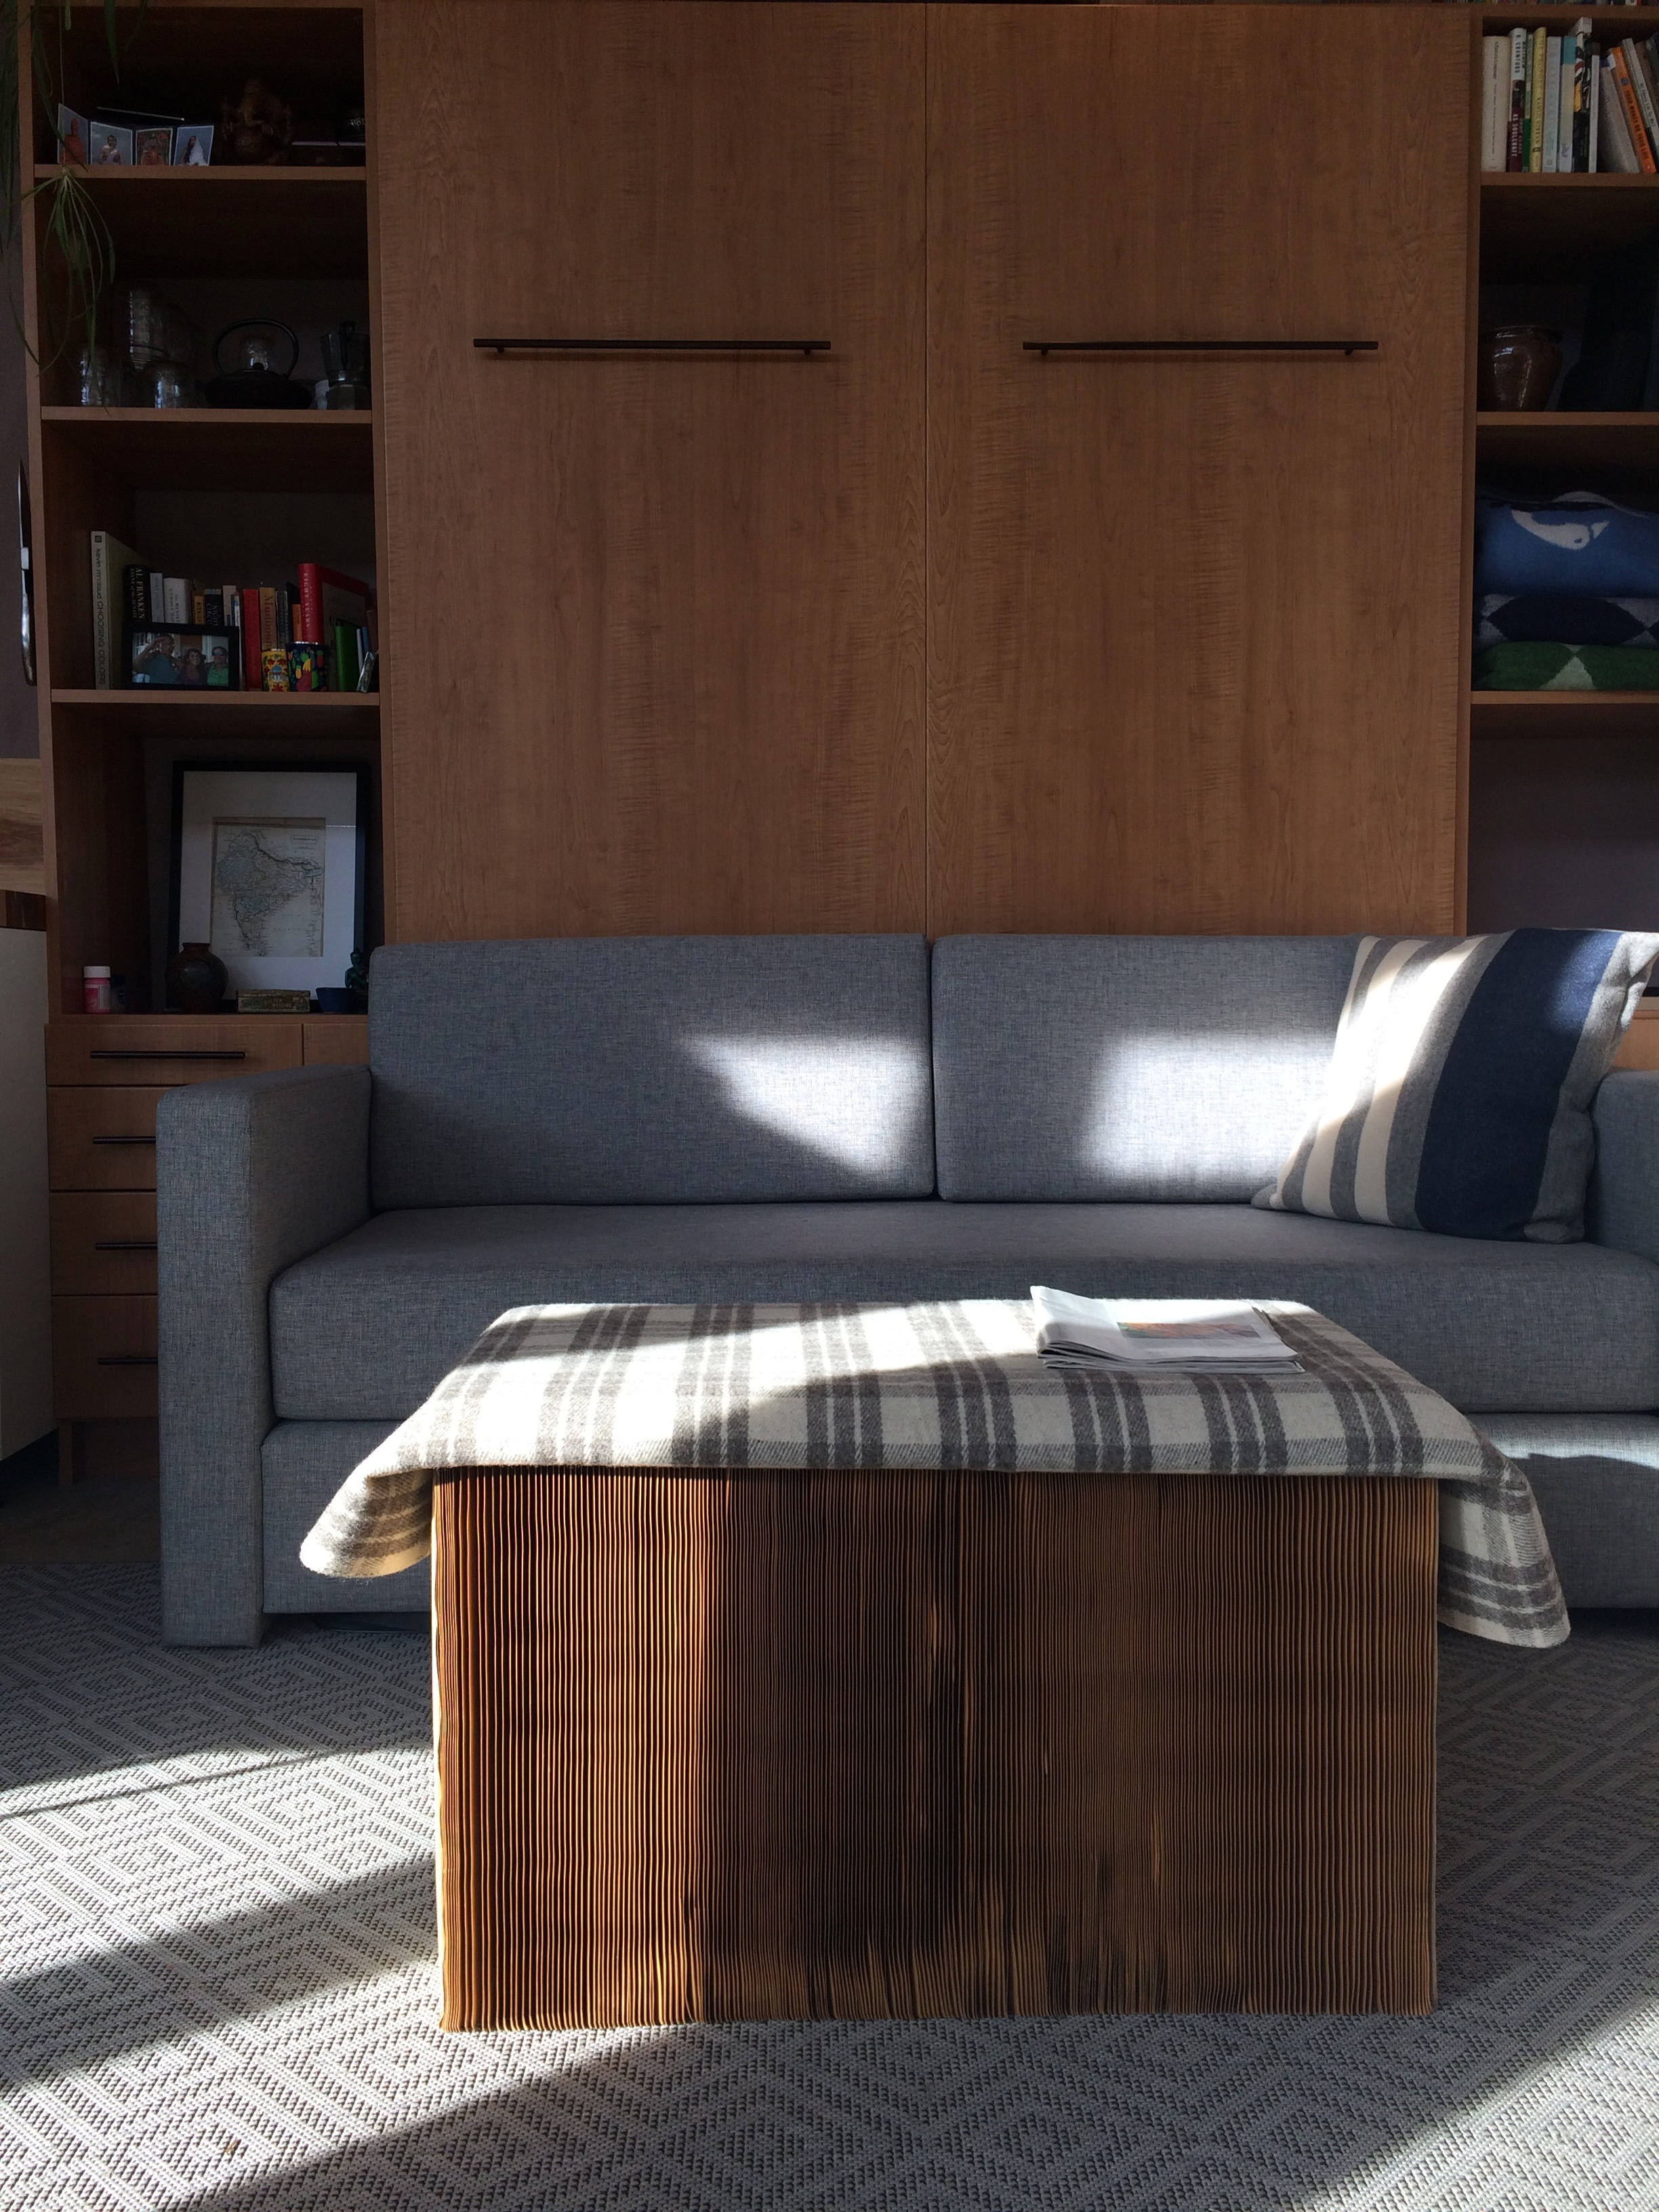 Studio murphy bed and collapsible coffee table – Micro Showcase